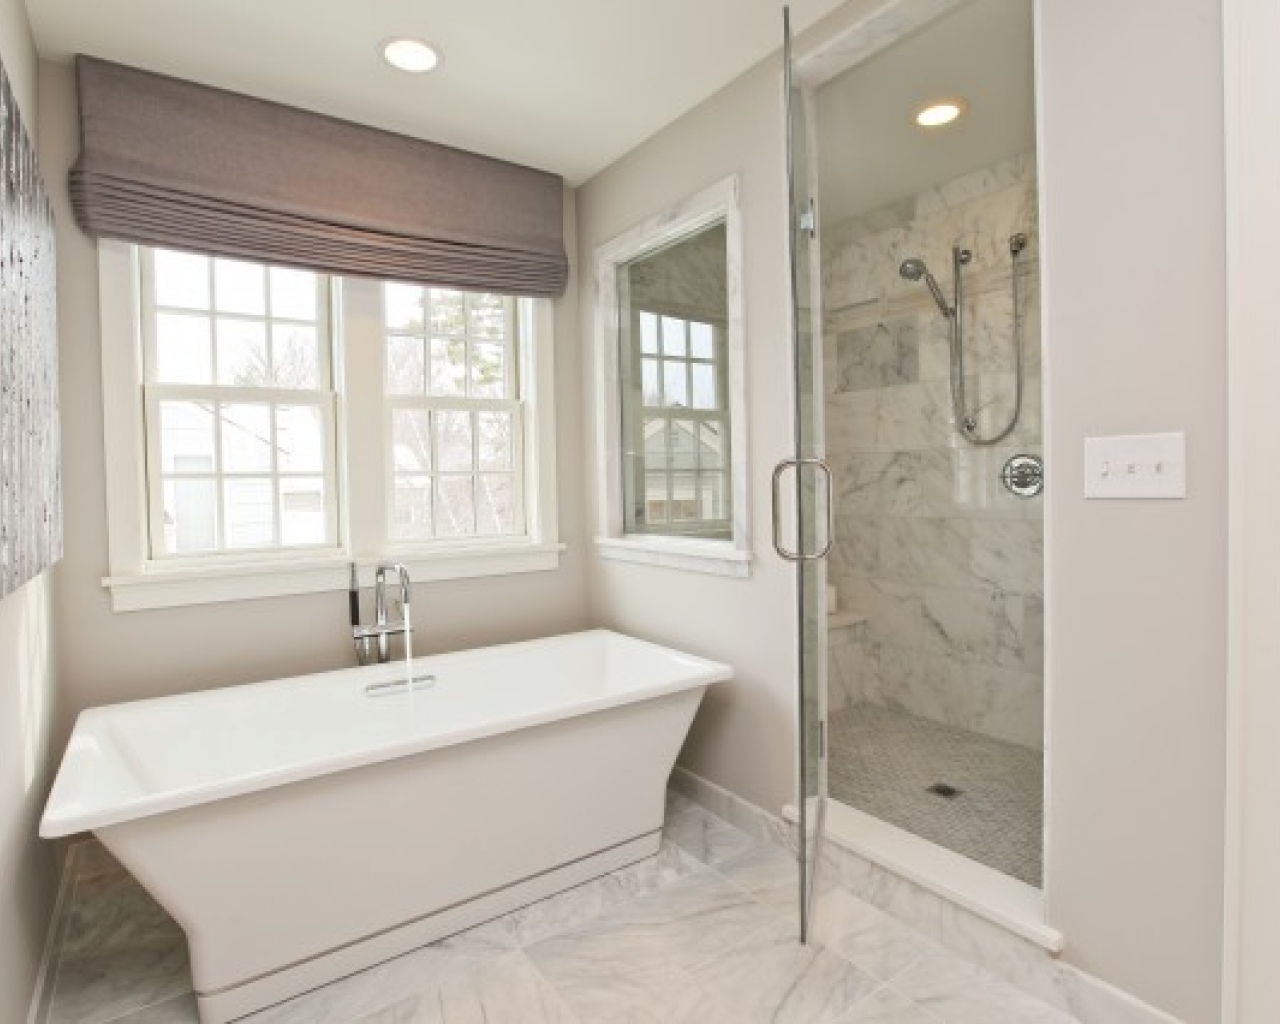 bathrooms-seamless-glass-shower-marble-tiles-shower-surround-floor-bathroom-ideas-bathroom-bathroom.com-marble-marble-bathroom-floor-tiles-marble-bathroom-pictures-marble-bathrooms-marble-tile